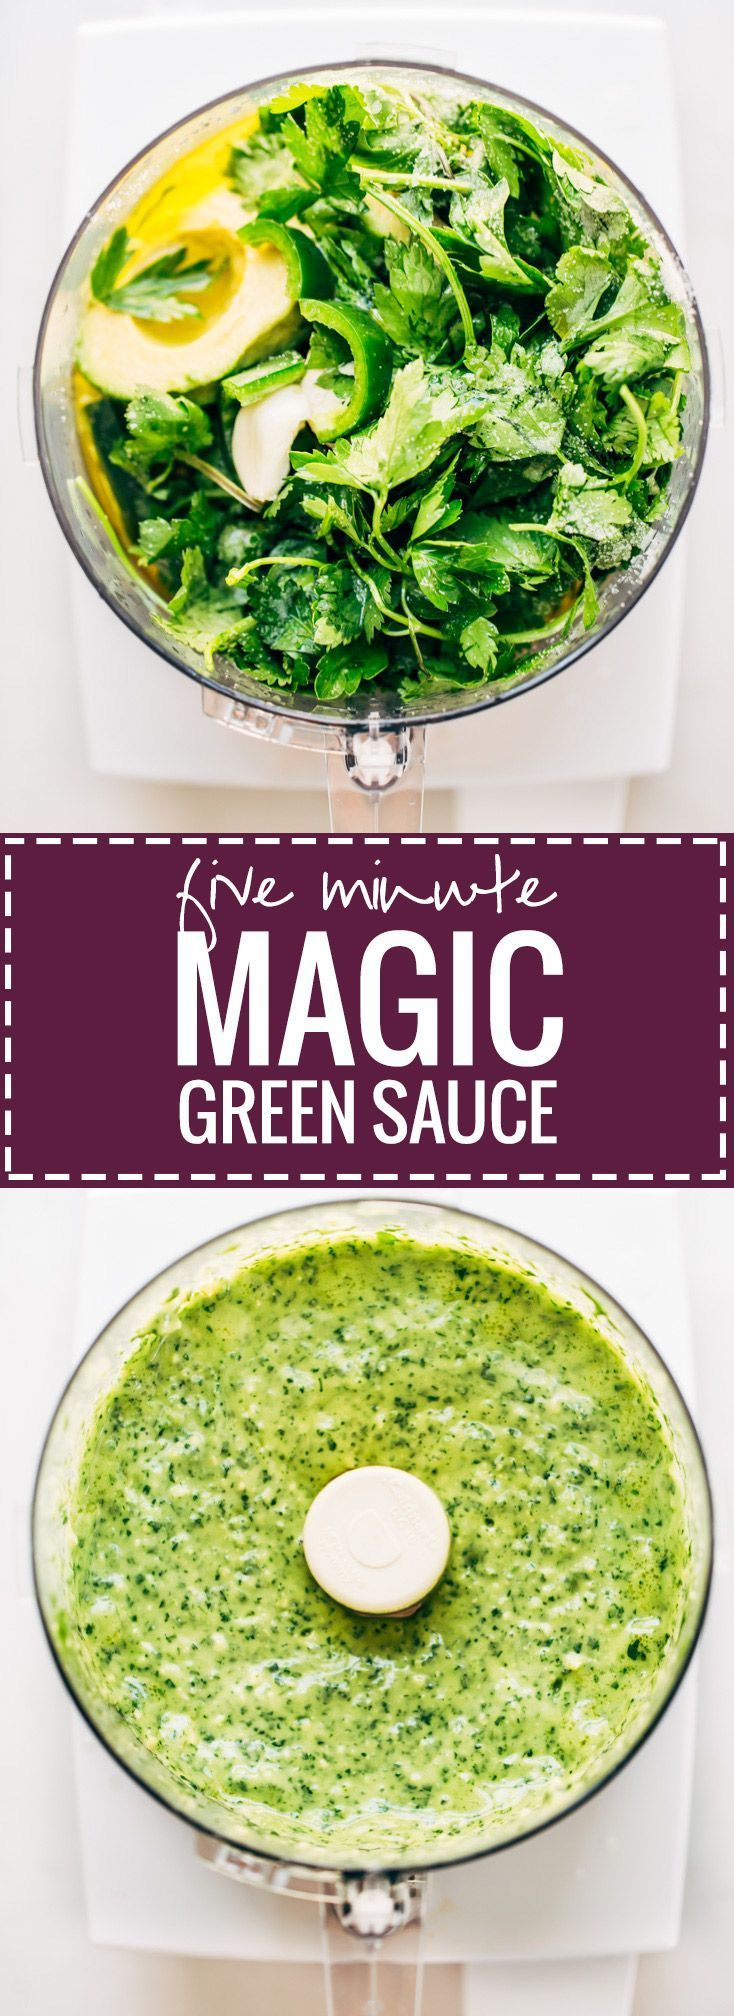 5 Minute Magic Green Sauce - use on salads, with chicken, or just as a dip! Easy ingredients like parsley, cilantro, avocado, garlic, and lime. Vegan!